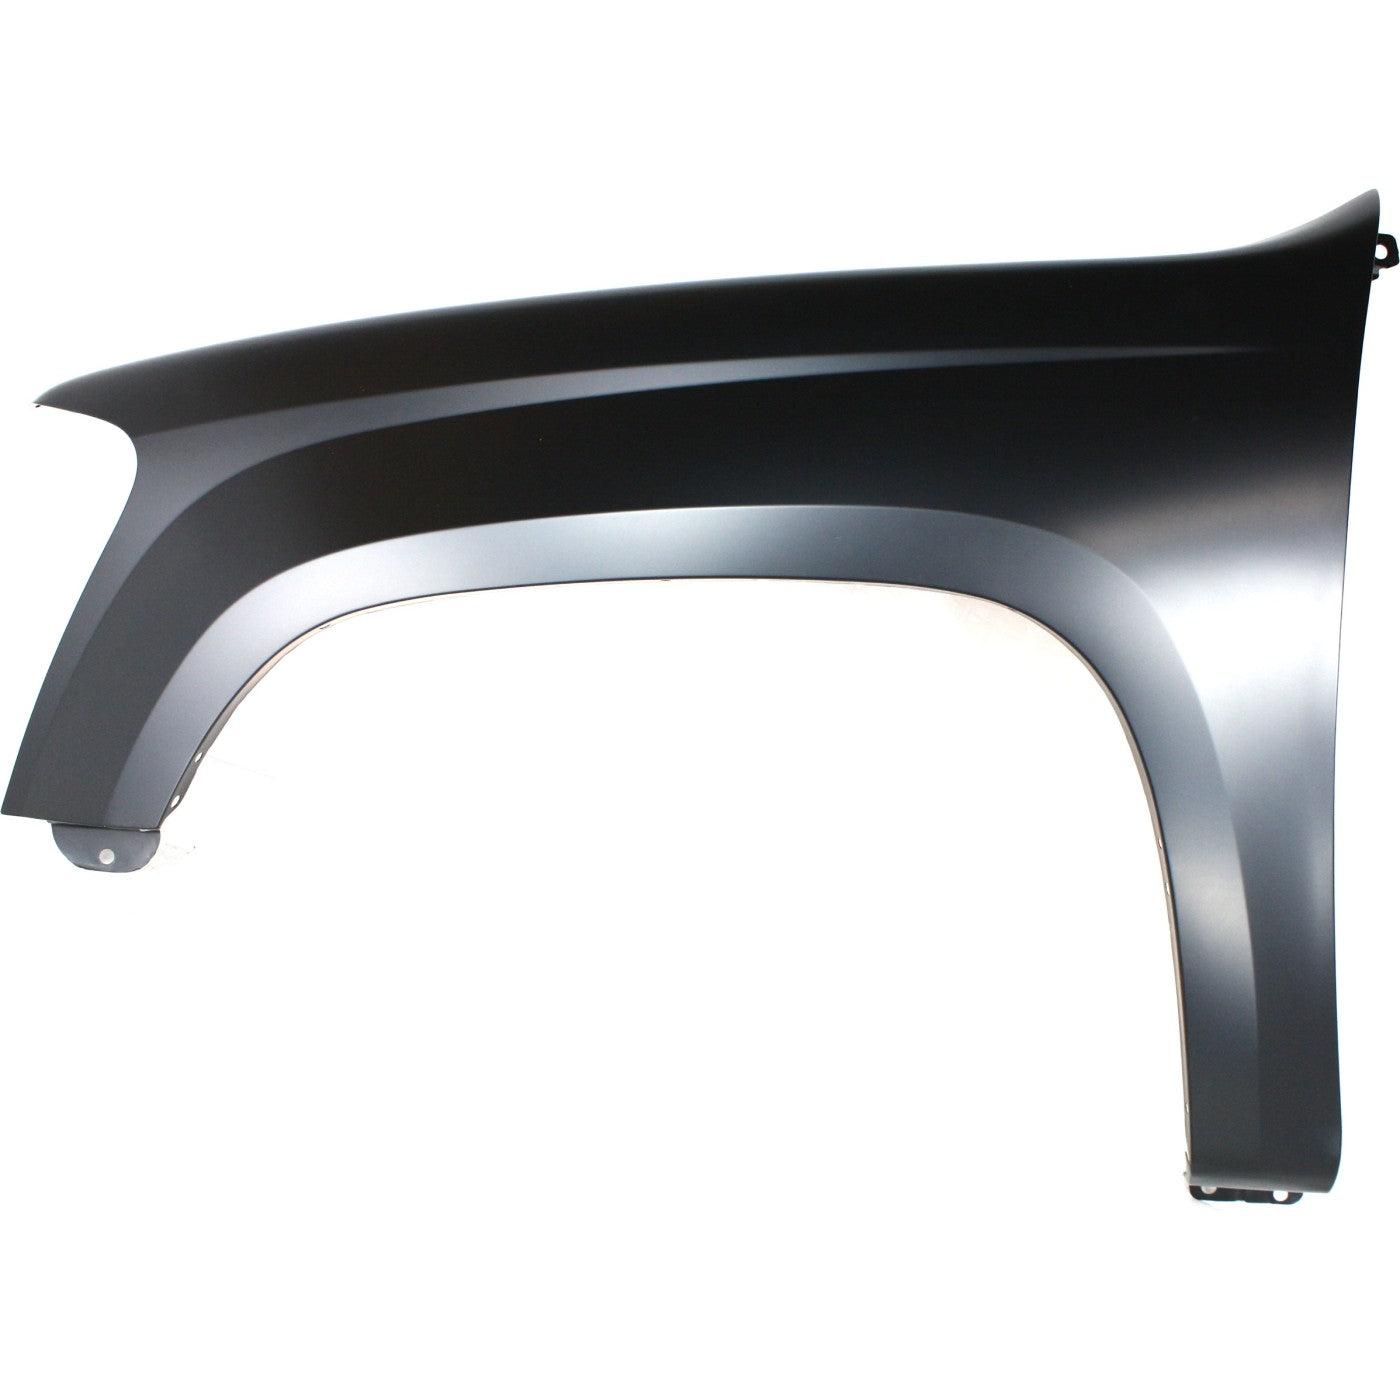 2004-2012 GMC Canyon Fender